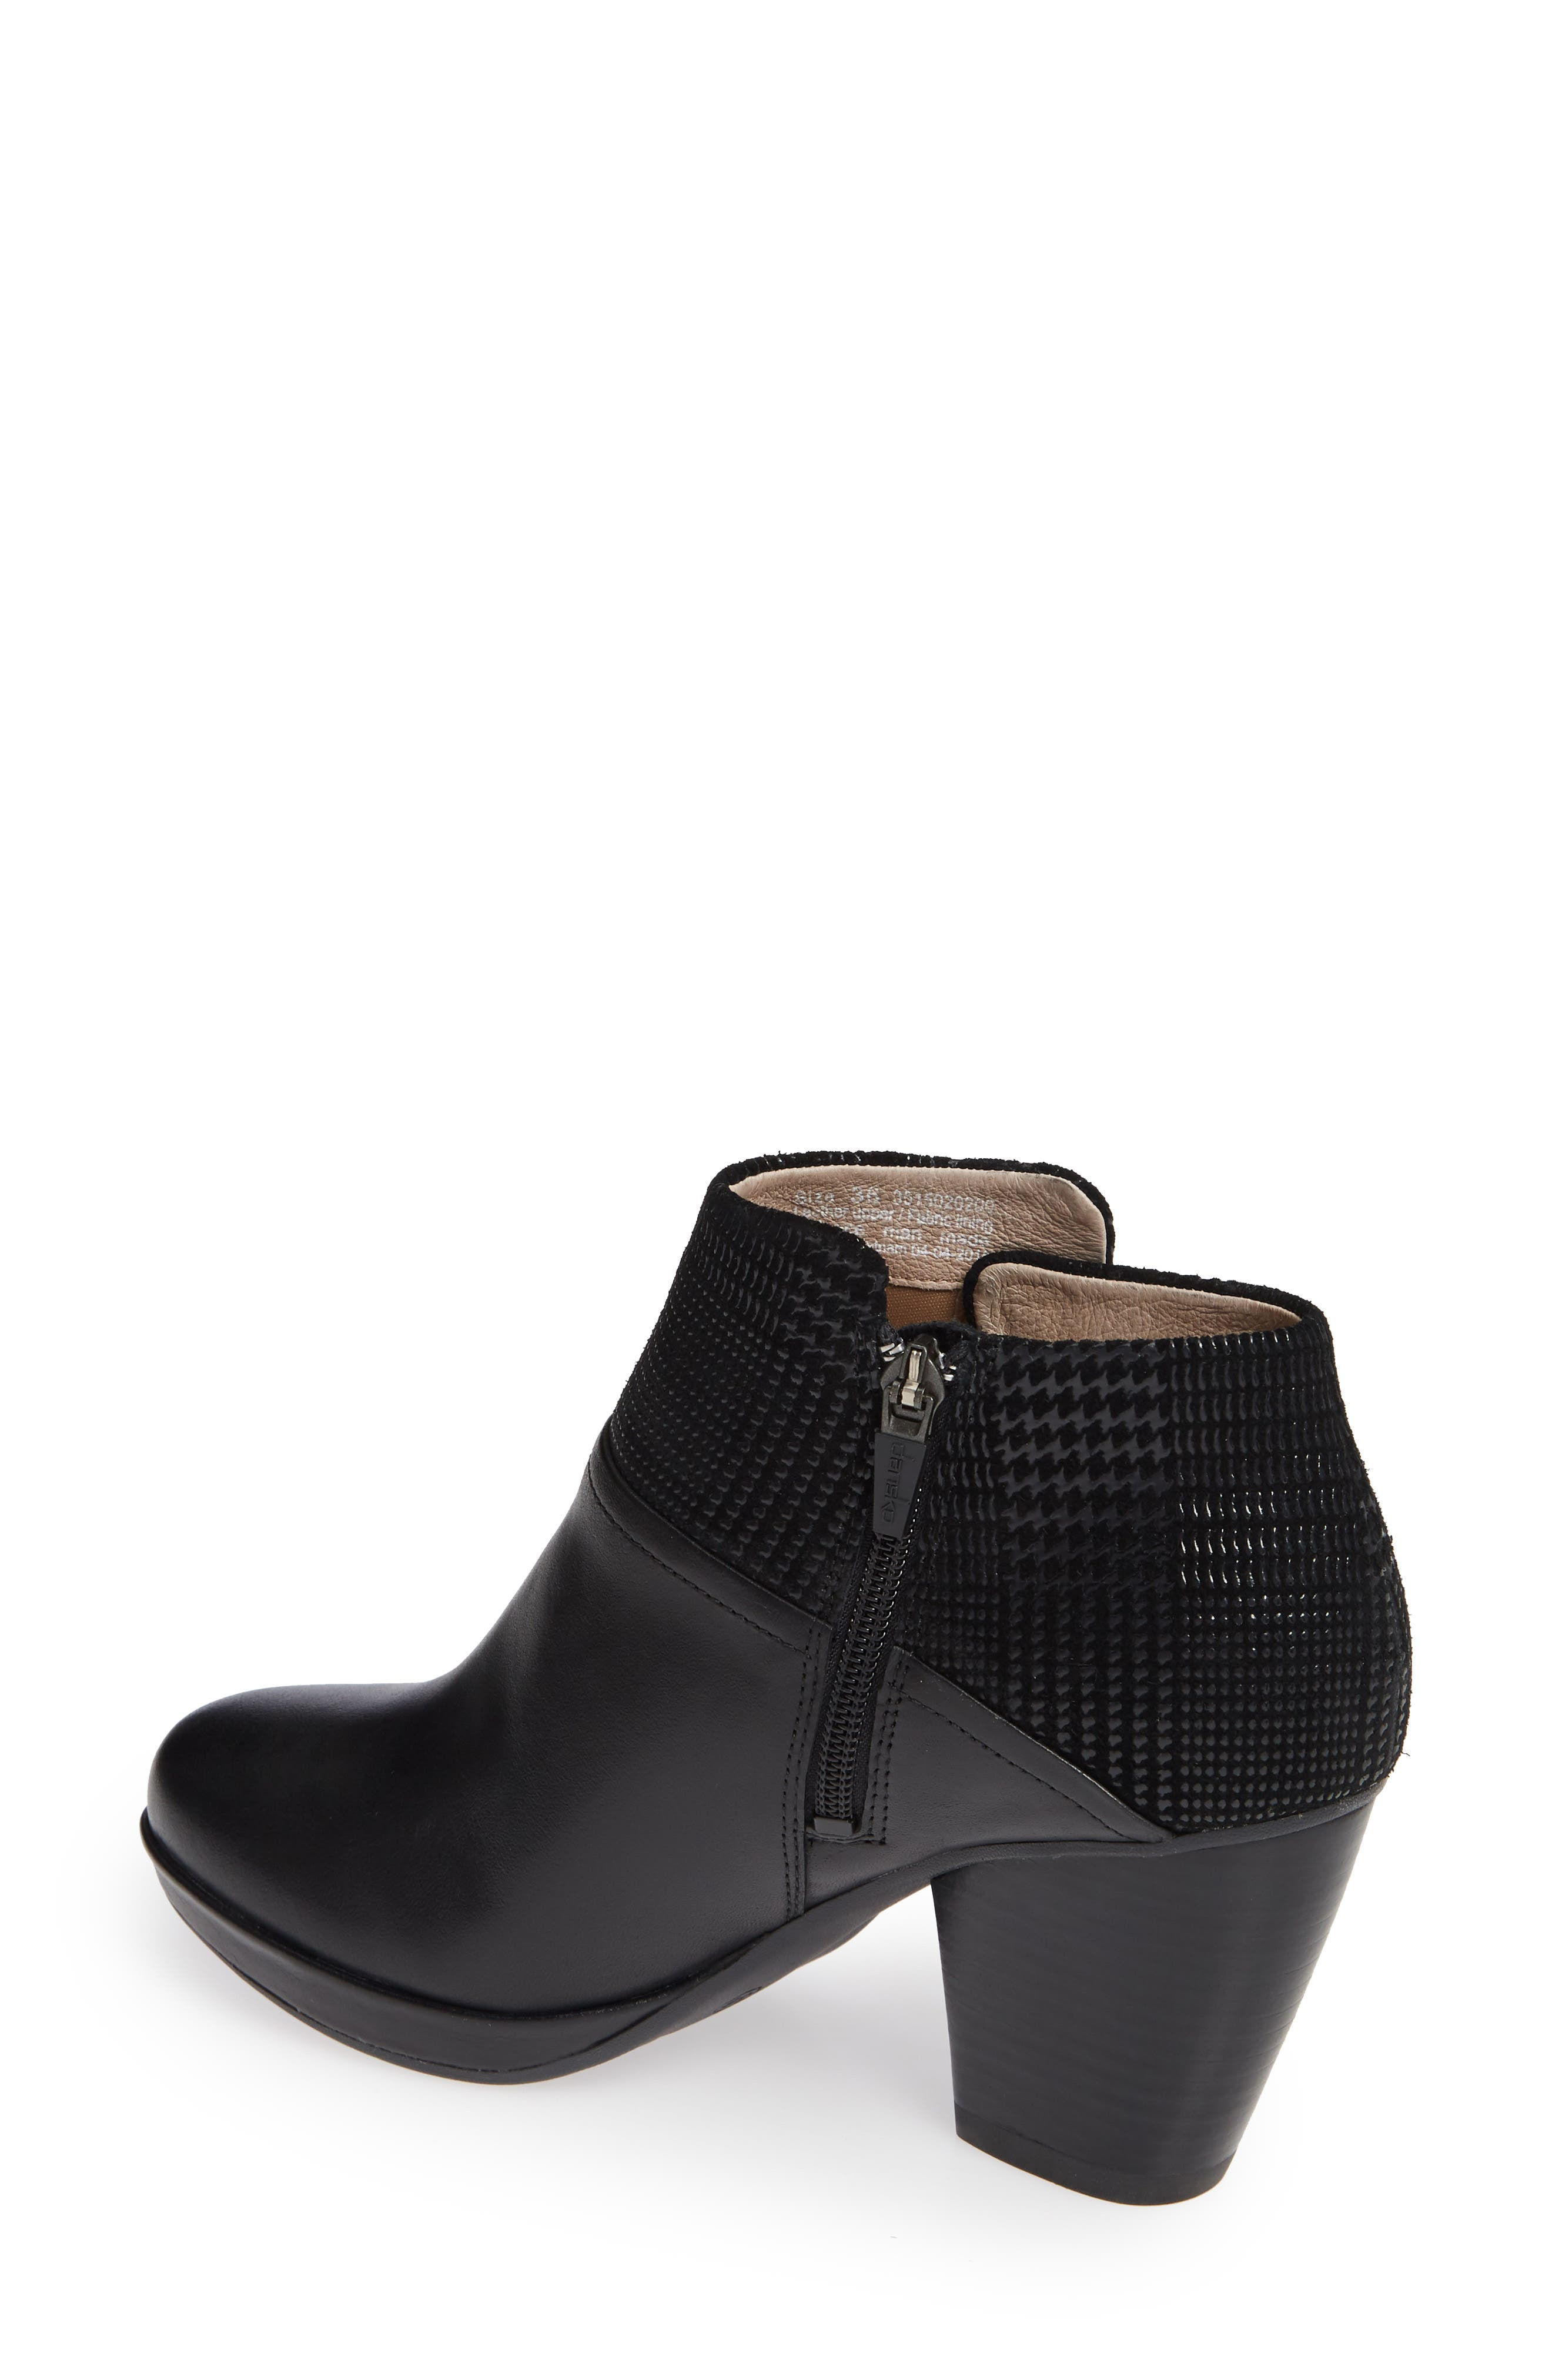 Miley Burnished Leather Bootie,                             Alternate thumbnail 2, color,                             BLACK BURNISHED LEATHER